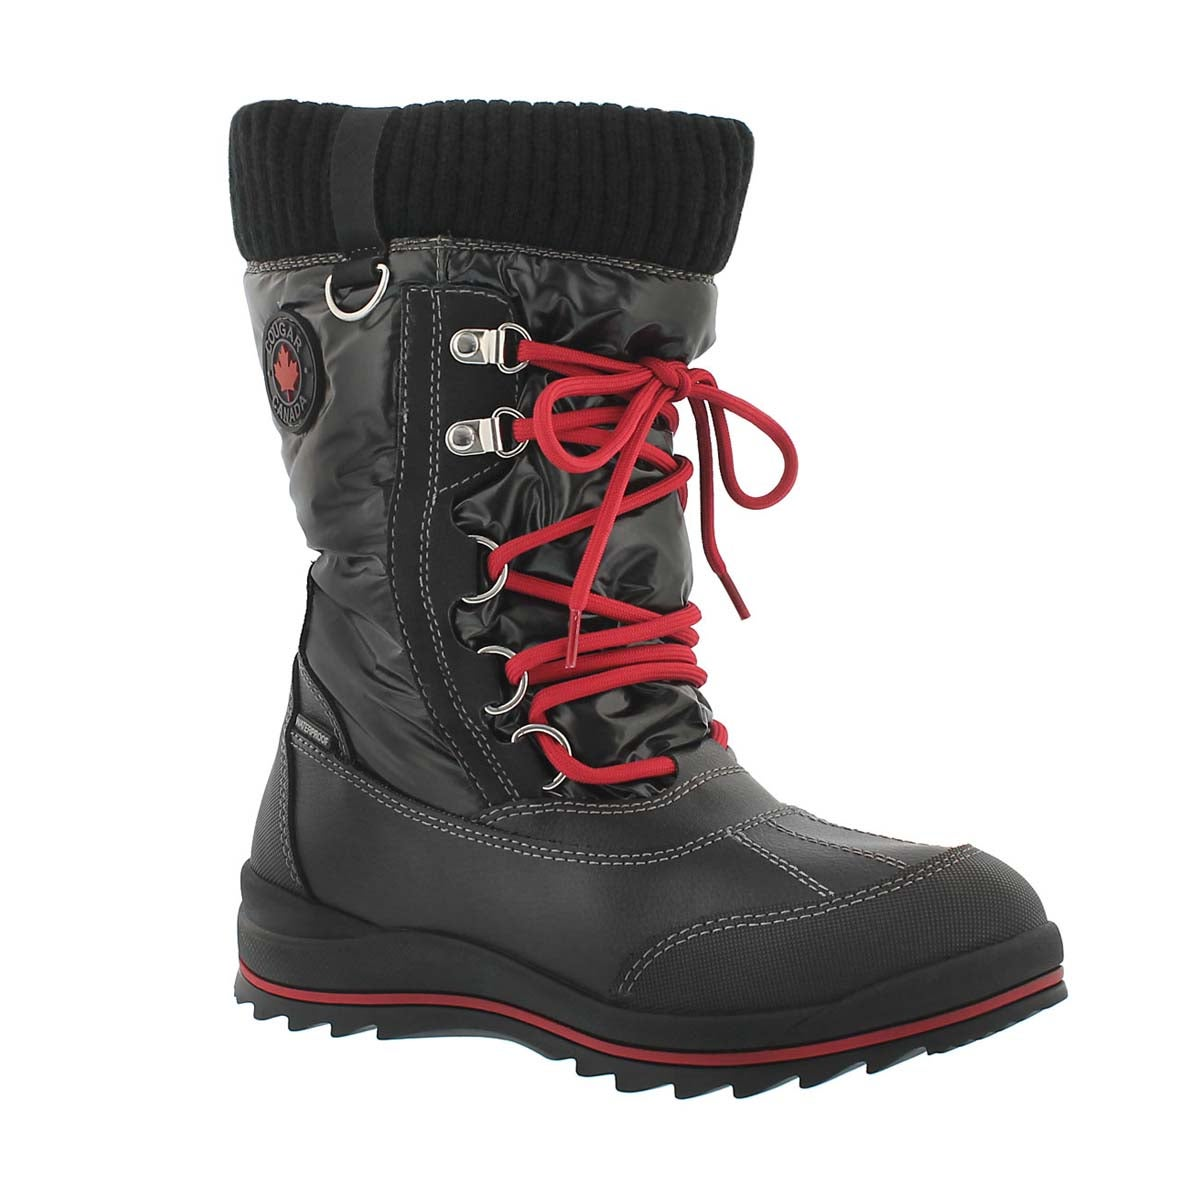 Girls' COMO black waterproof pull on winter boots